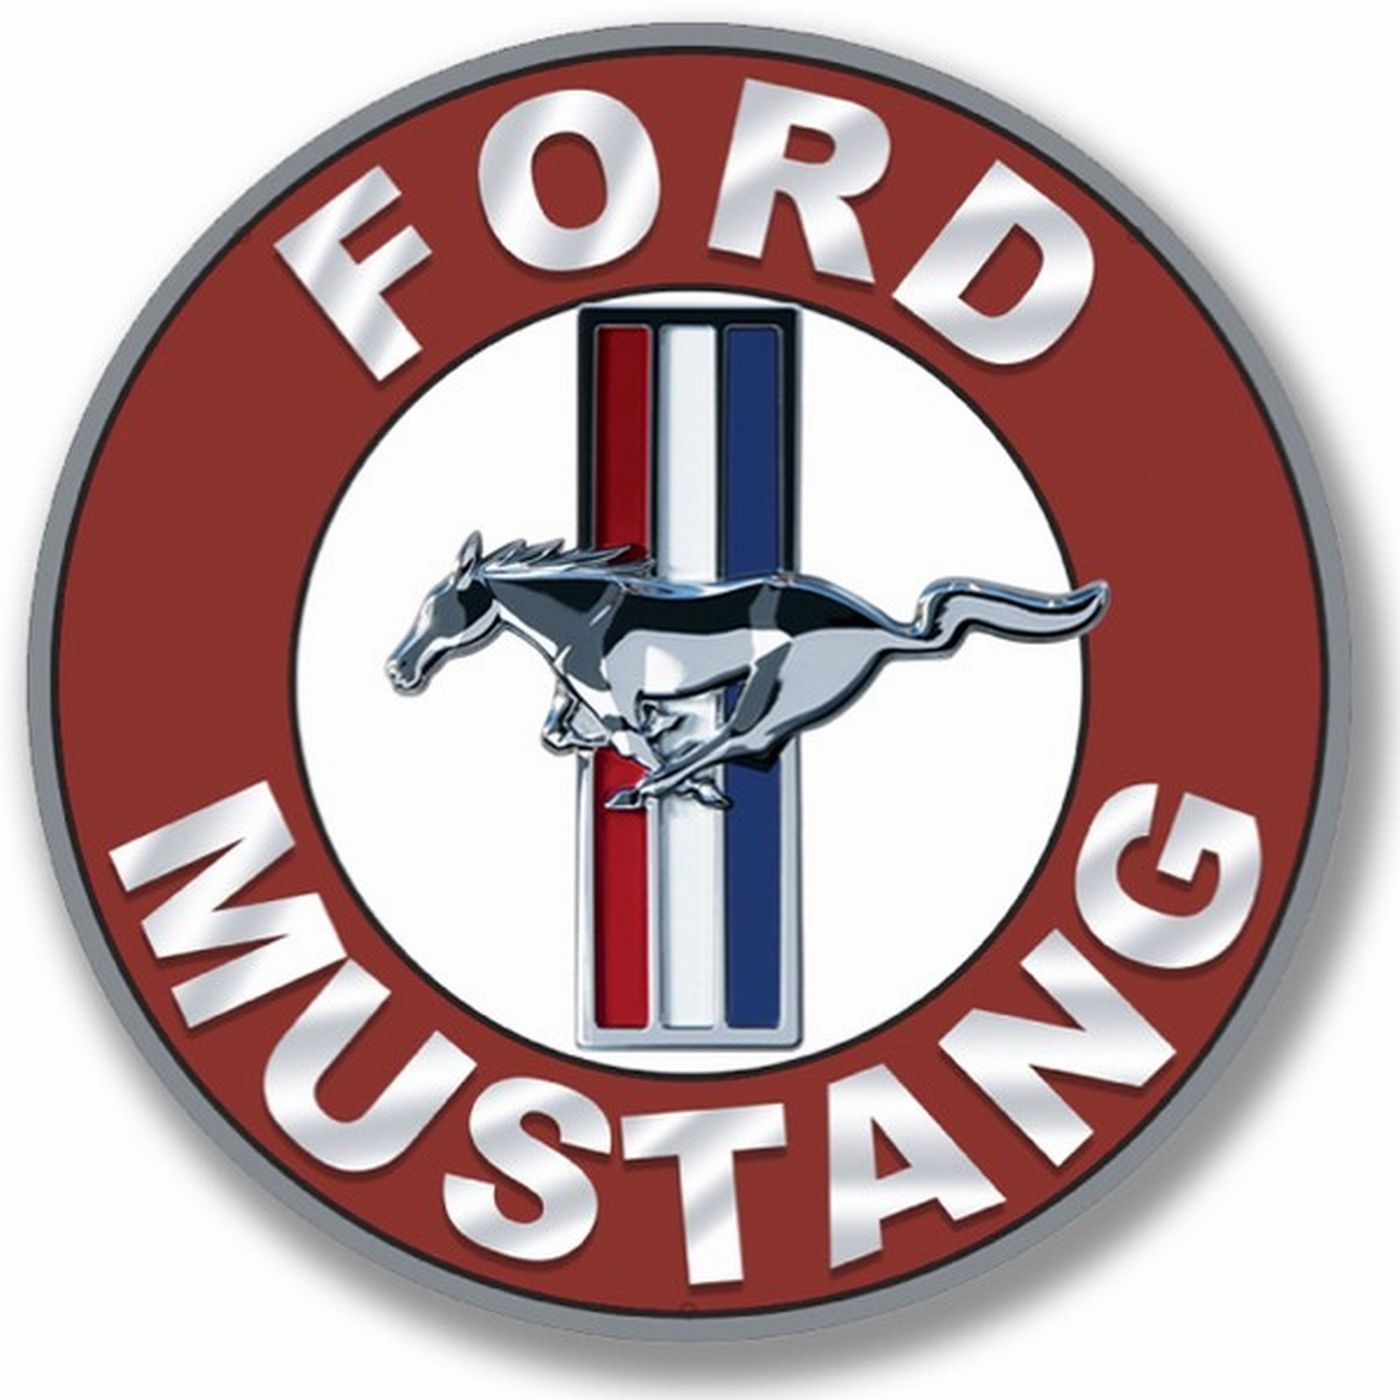 ford mustang 17 5 cm avto logo en 2018 pinterest voiture mustang et logo voiture. Black Bedroom Furniture Sets. Home Design Ideas